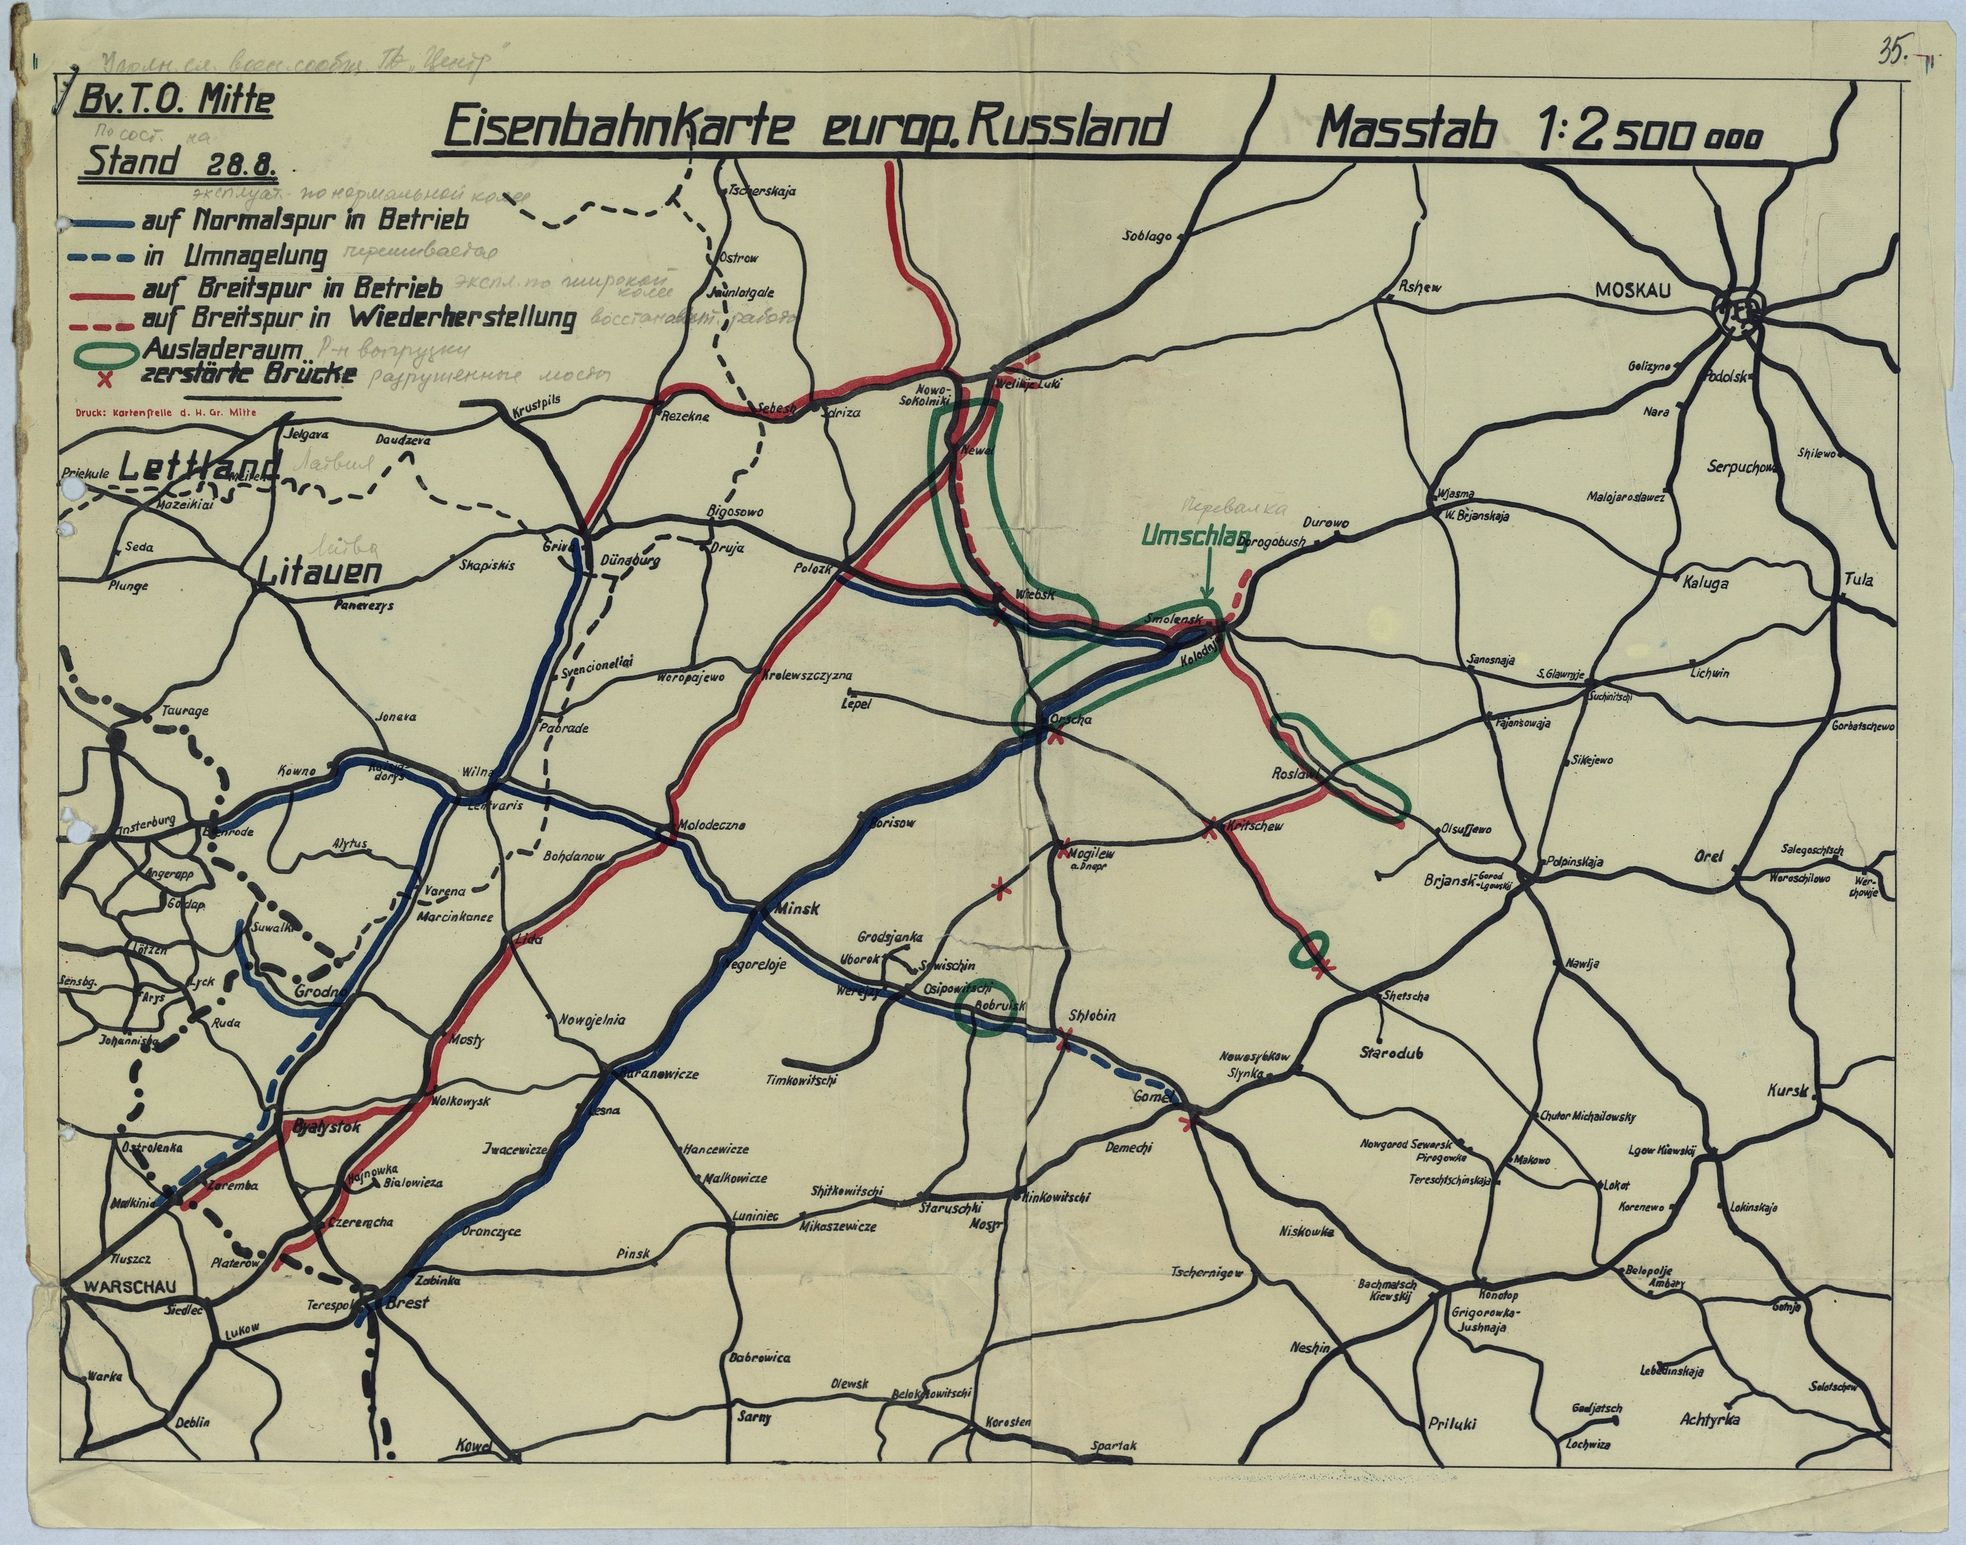 German railway situation 28th August 1941. Three lines unloading in Smolensk area but lack of capacity denies Heer opportunity to build up forces for Operation Typhoon launched on 2nd October 1941.